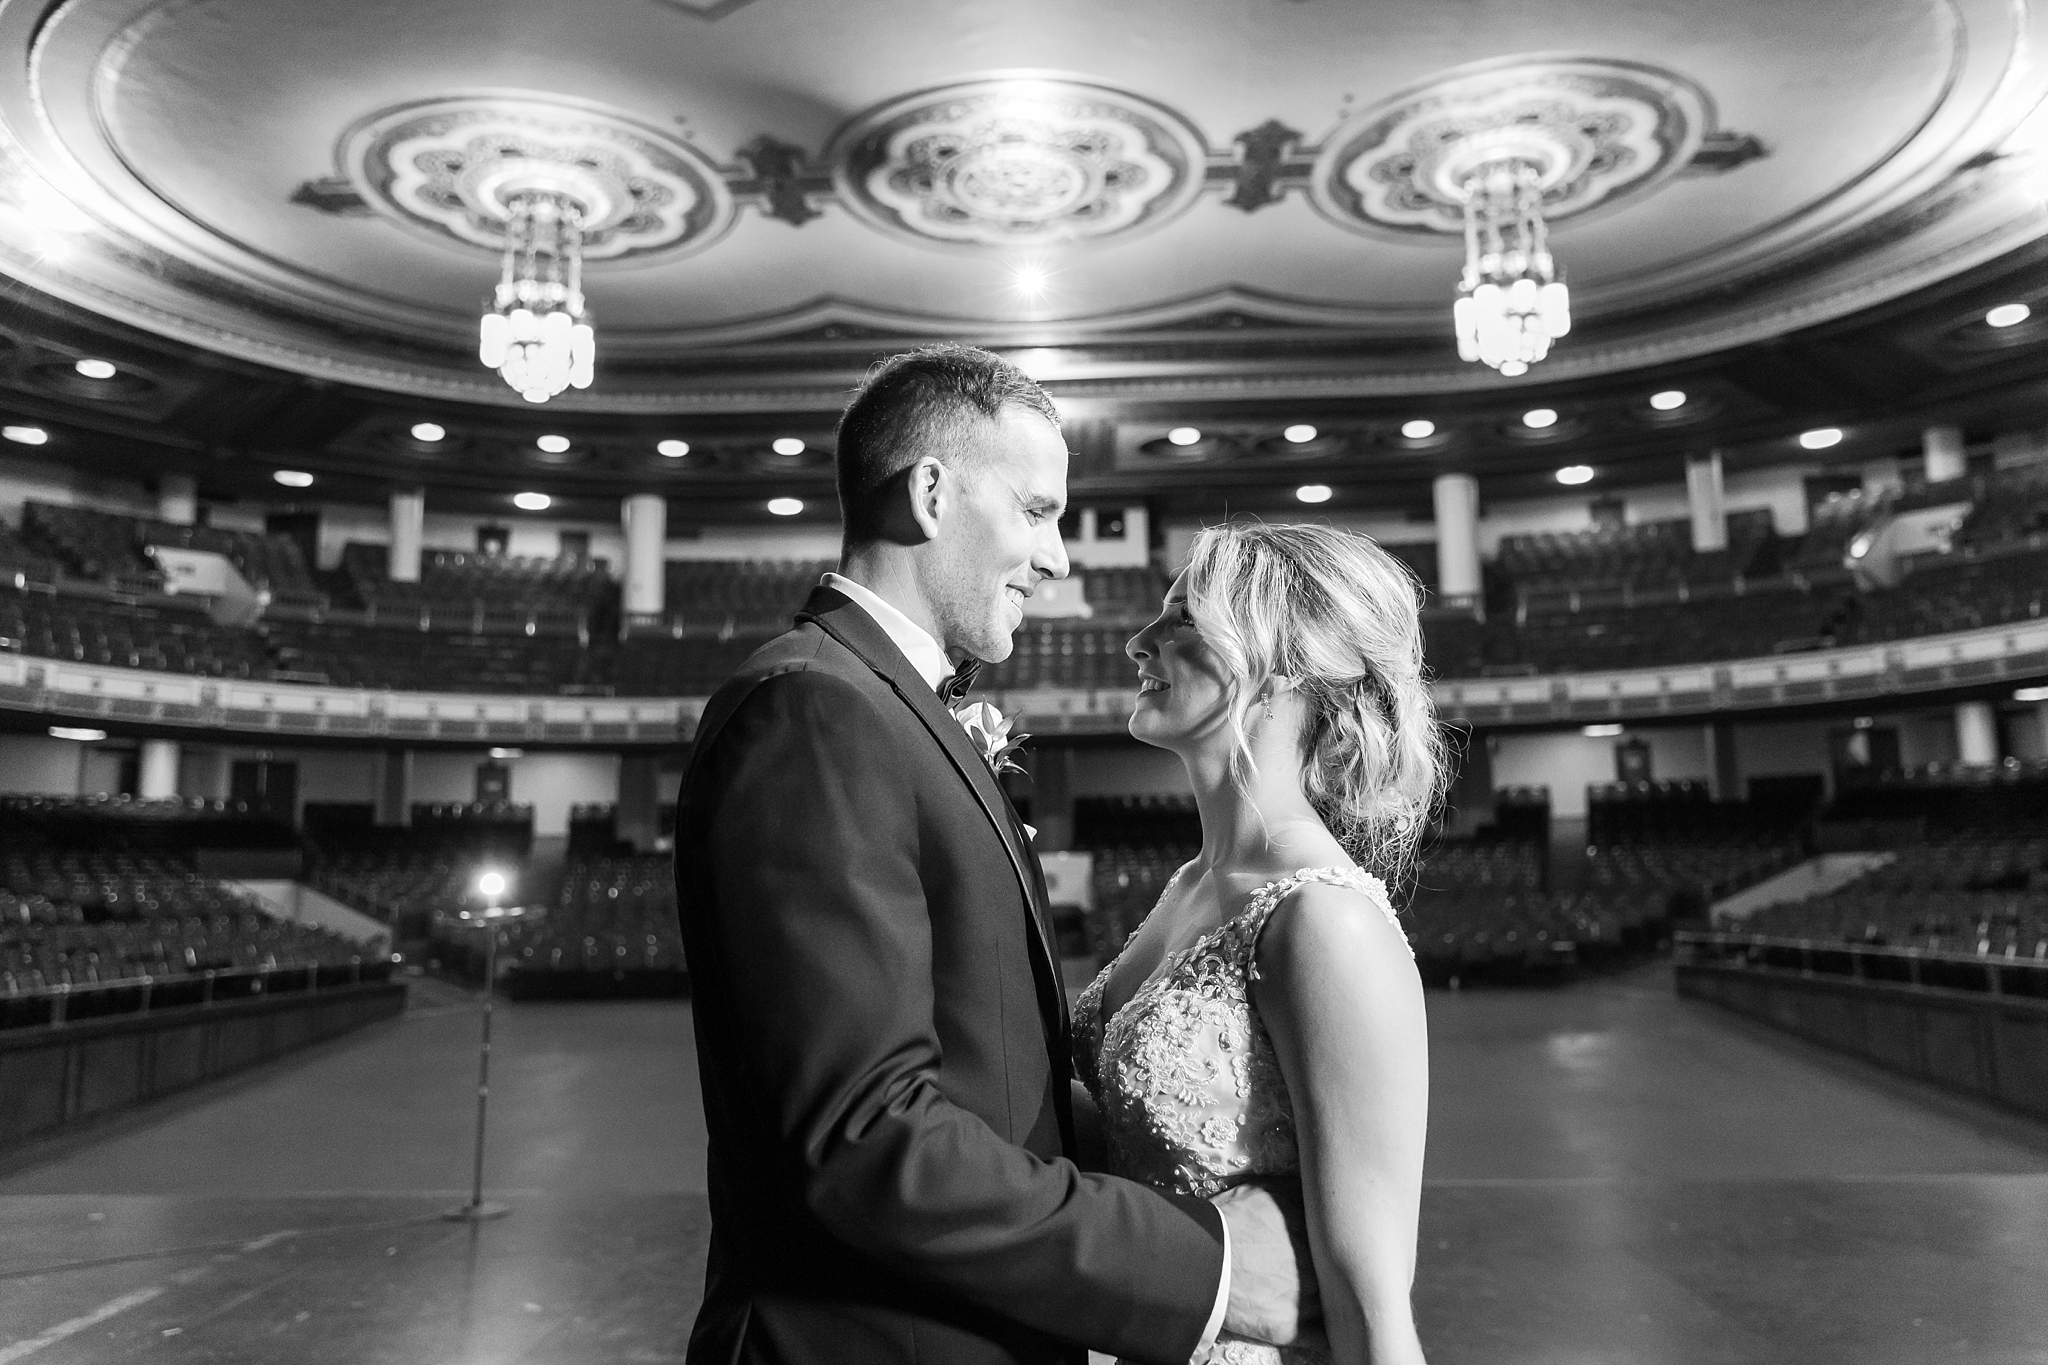 candid-romantic-wedding-photos-at-the-masonic-temple-belle-isle-detroit-institute-of-arts-in-detroit-michigan-by-courtney-carolyn-photography_0064.jpg